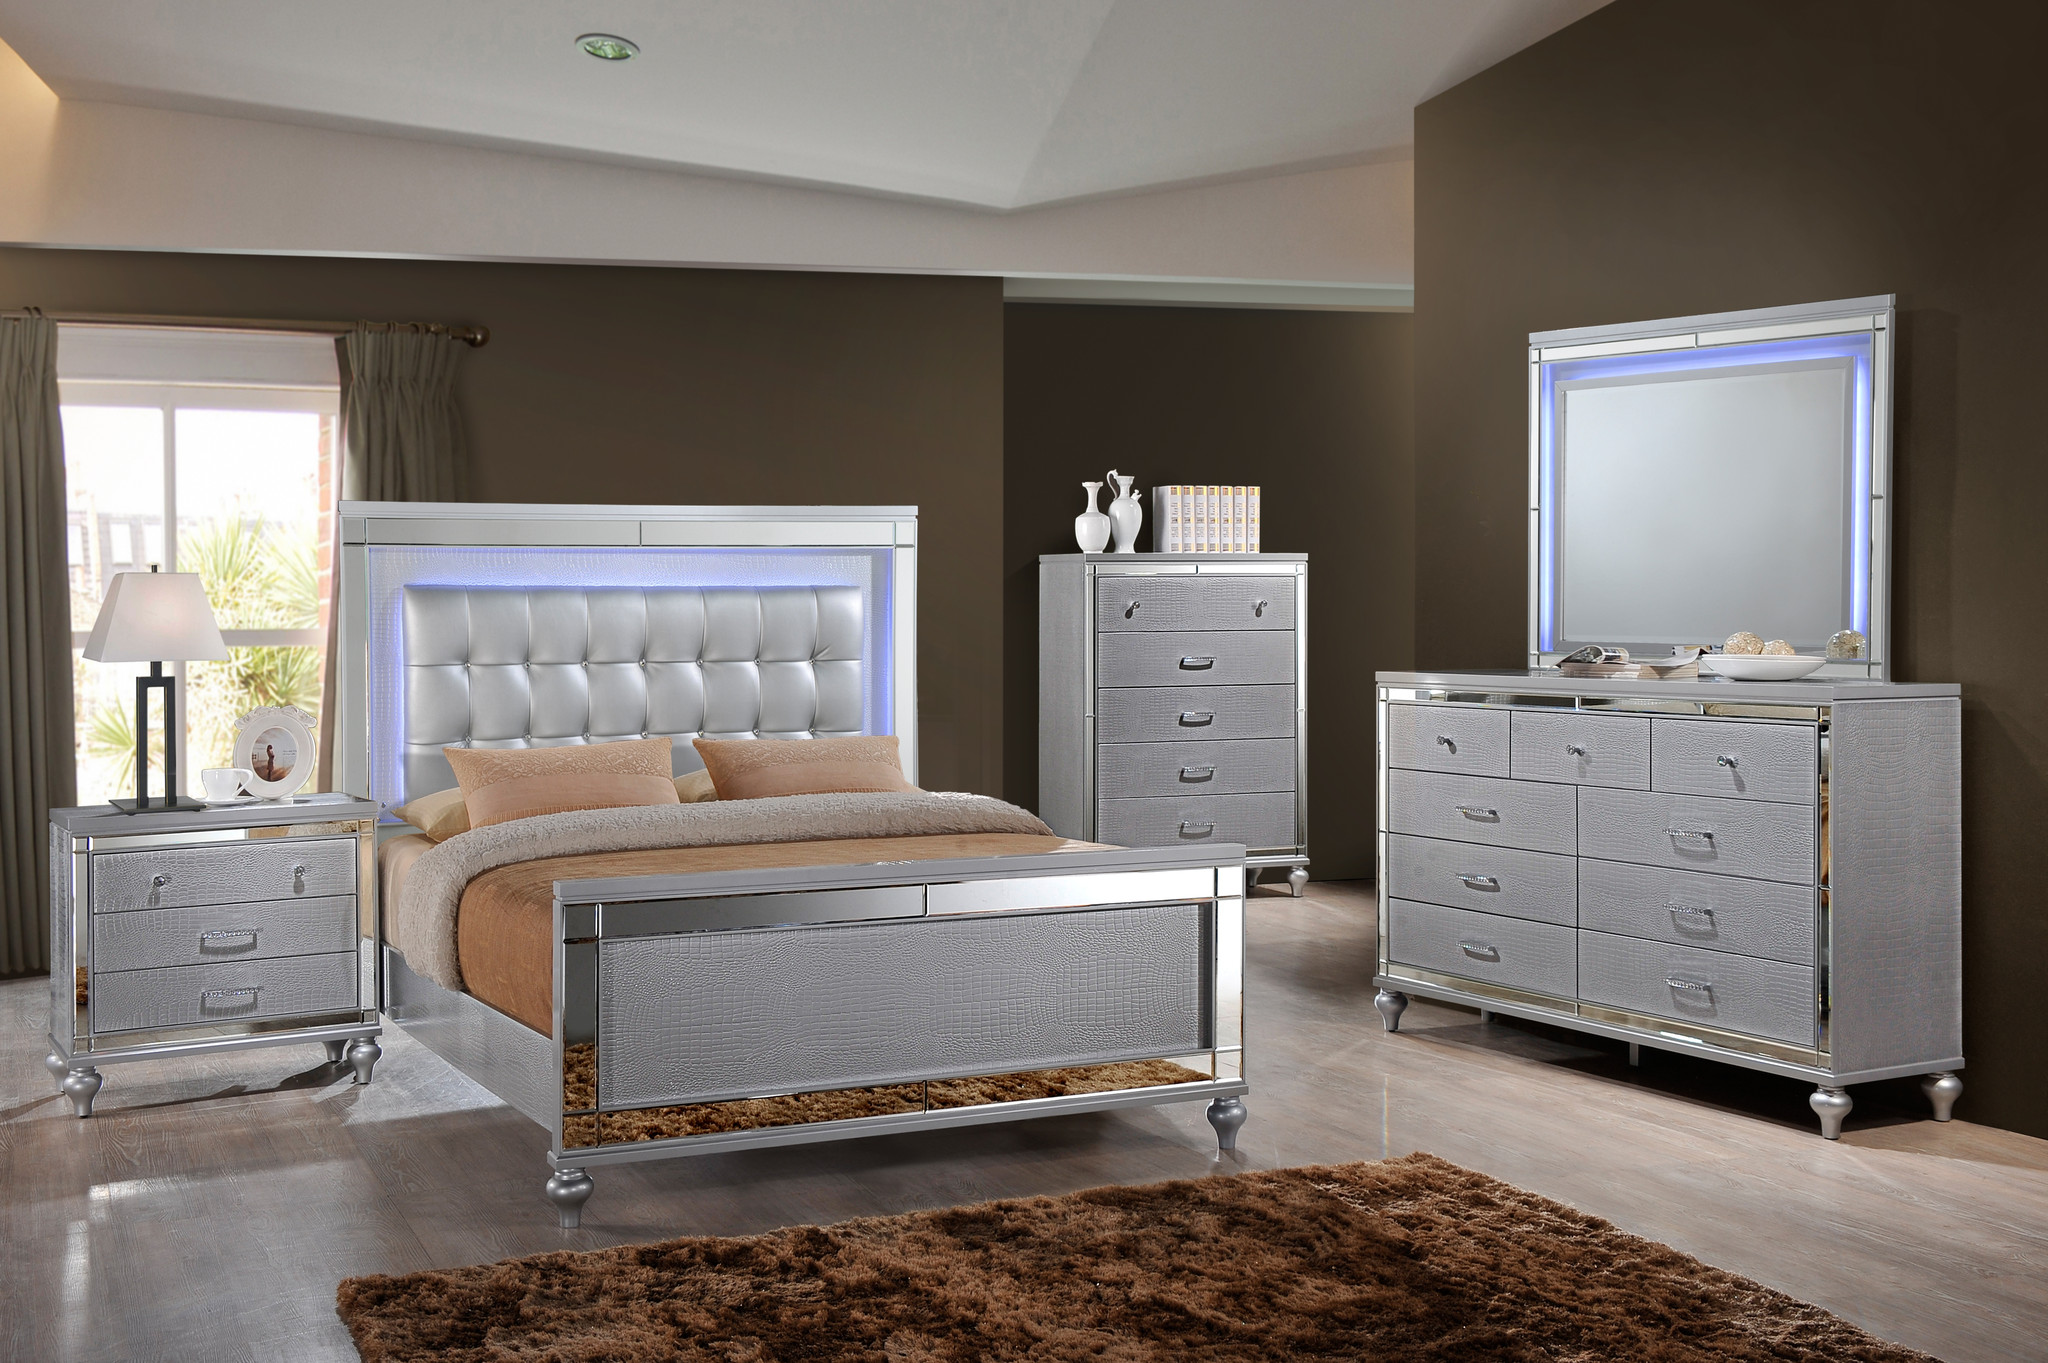 nightstand mirrored dresser ikea nightstands stylish frame mirror flex flat sheet target bedroom set sets valentino adams furniture the company packages threshold accent table